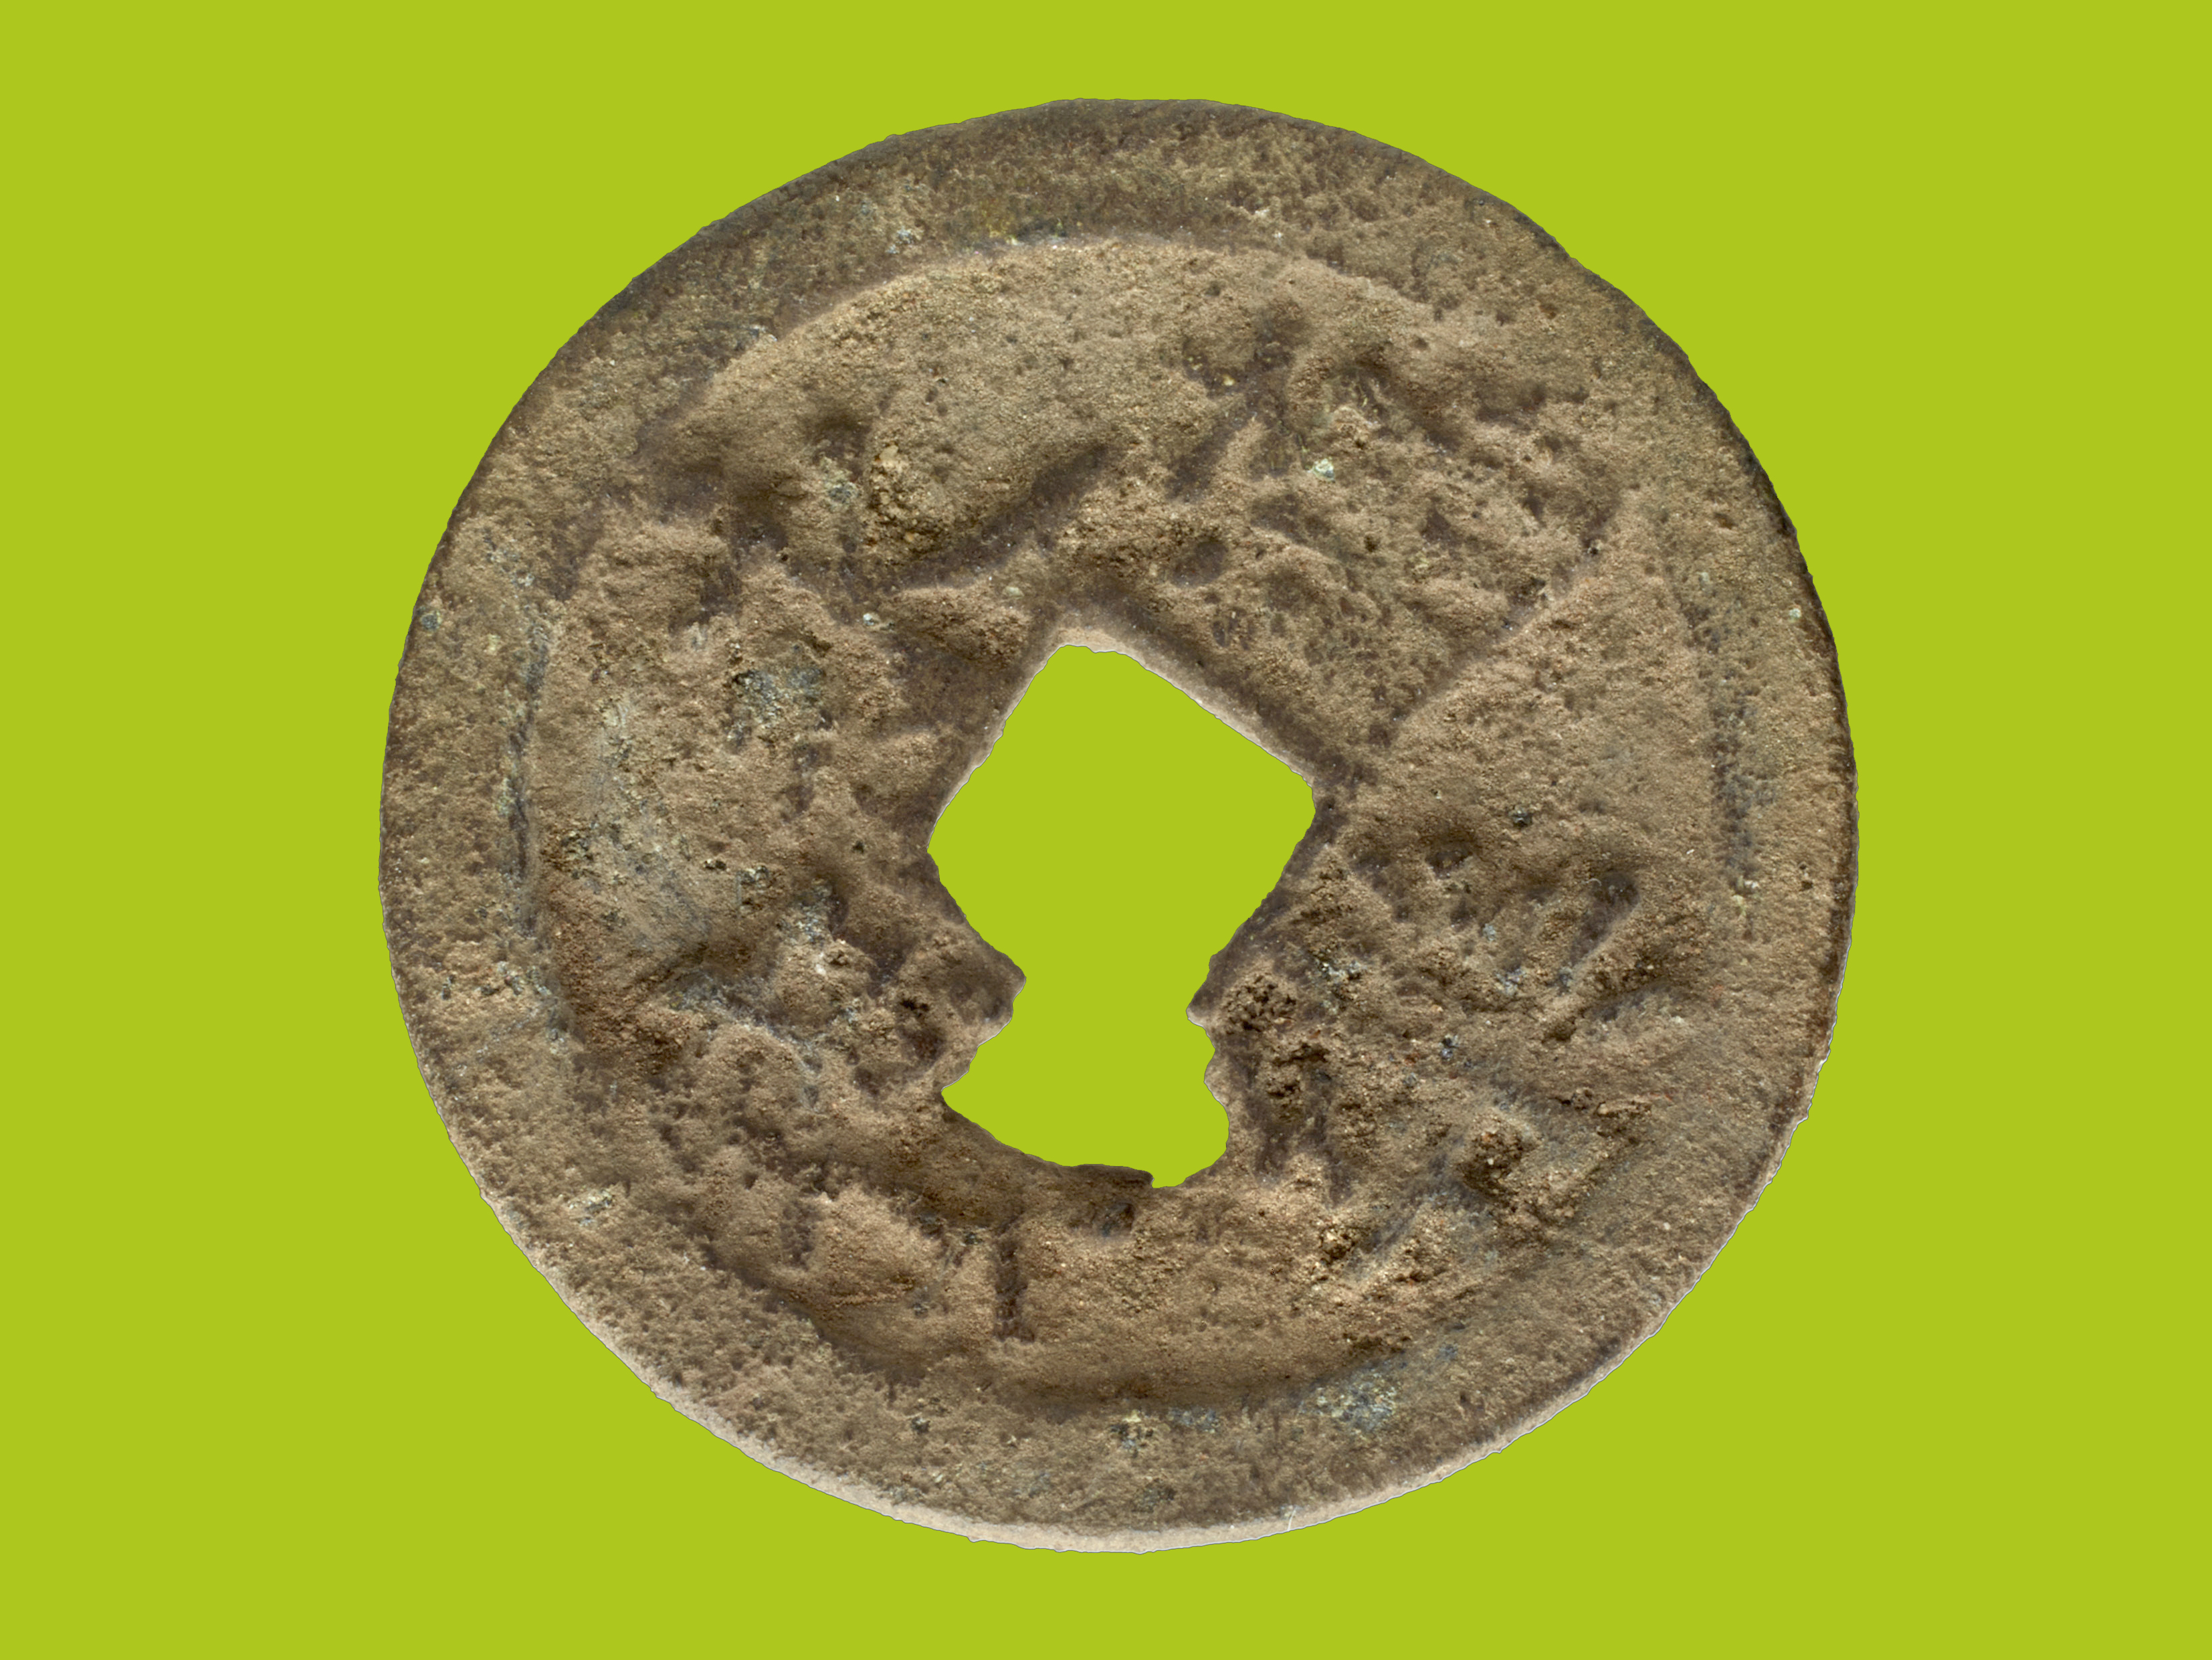 Ancient Chinese coin found on Kenyan island by Field Museum expedition